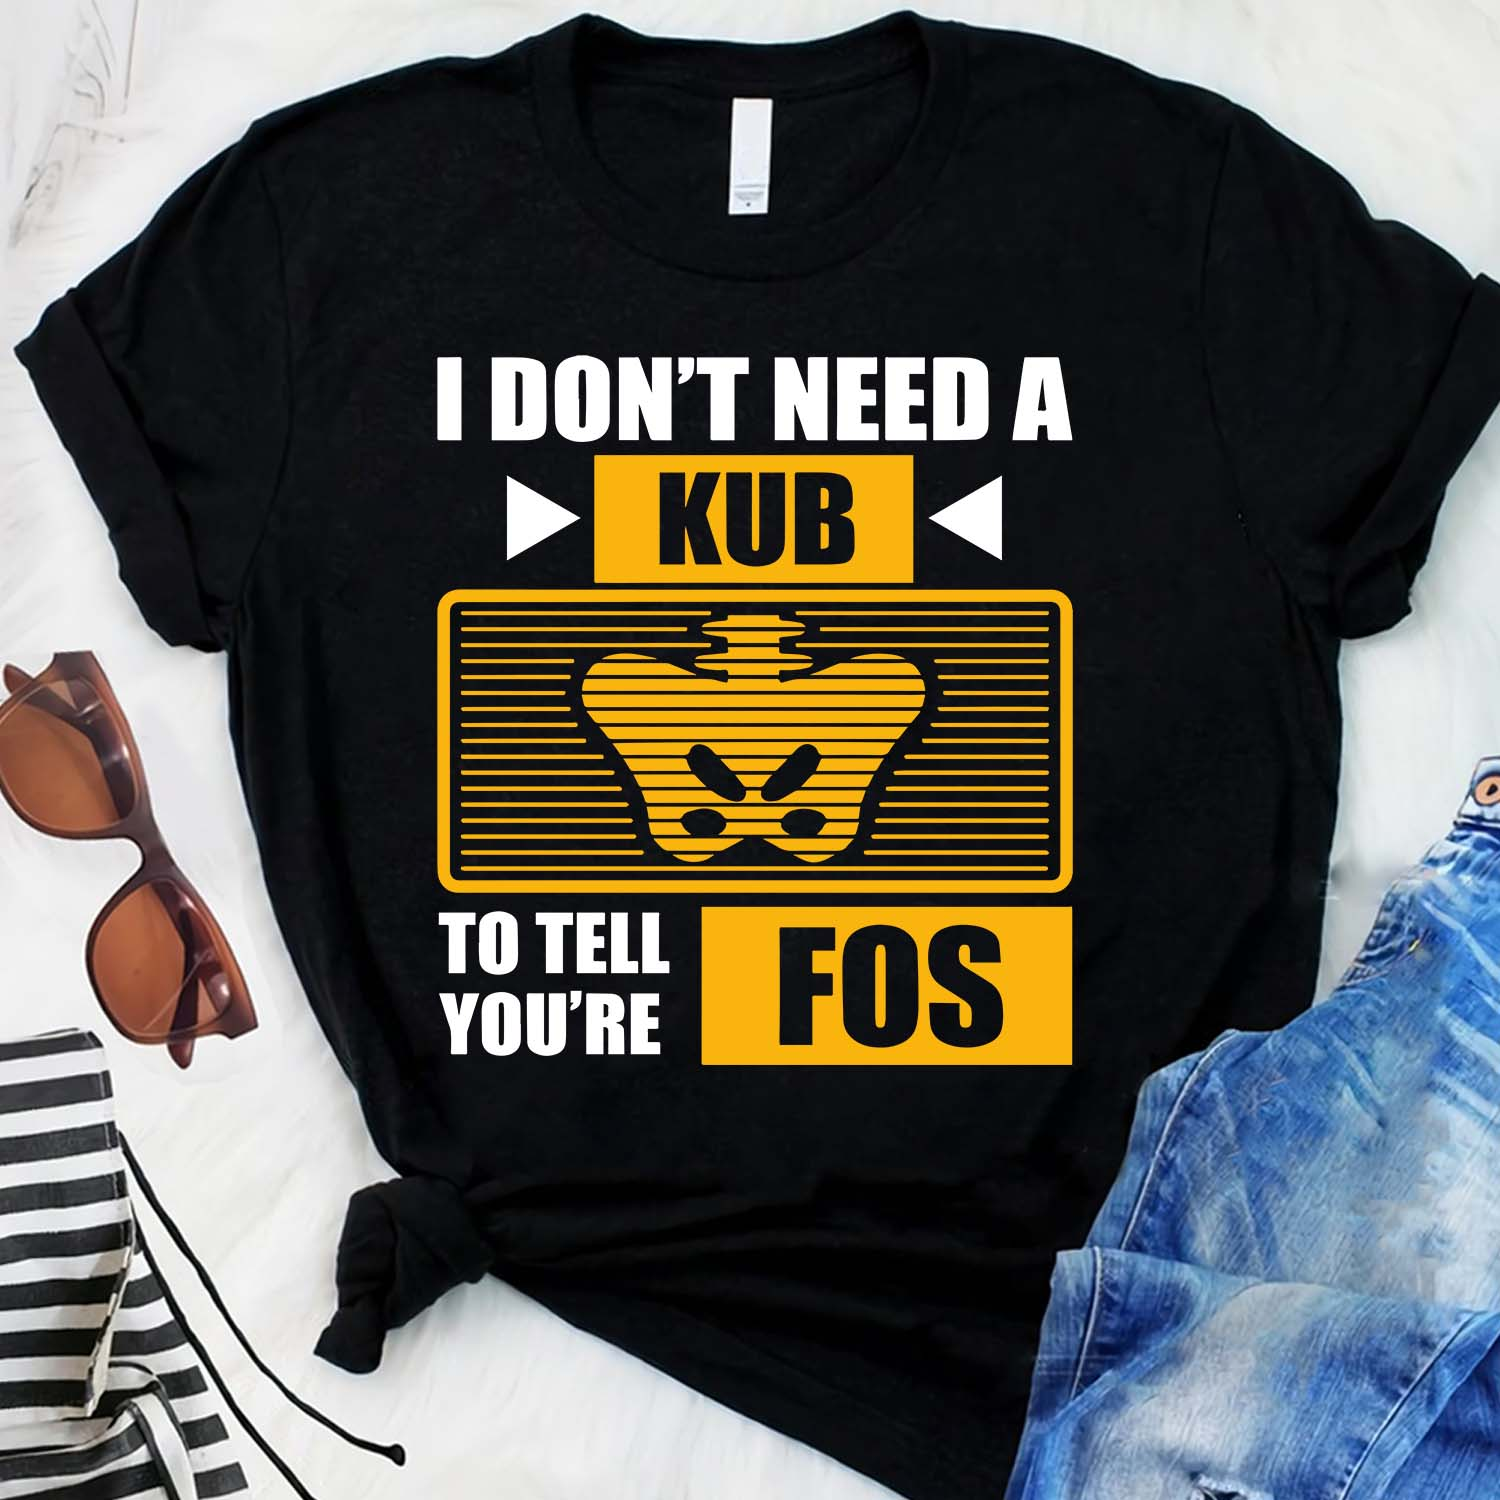 I Don't Need A Kub To Tell You're FOS Shirt